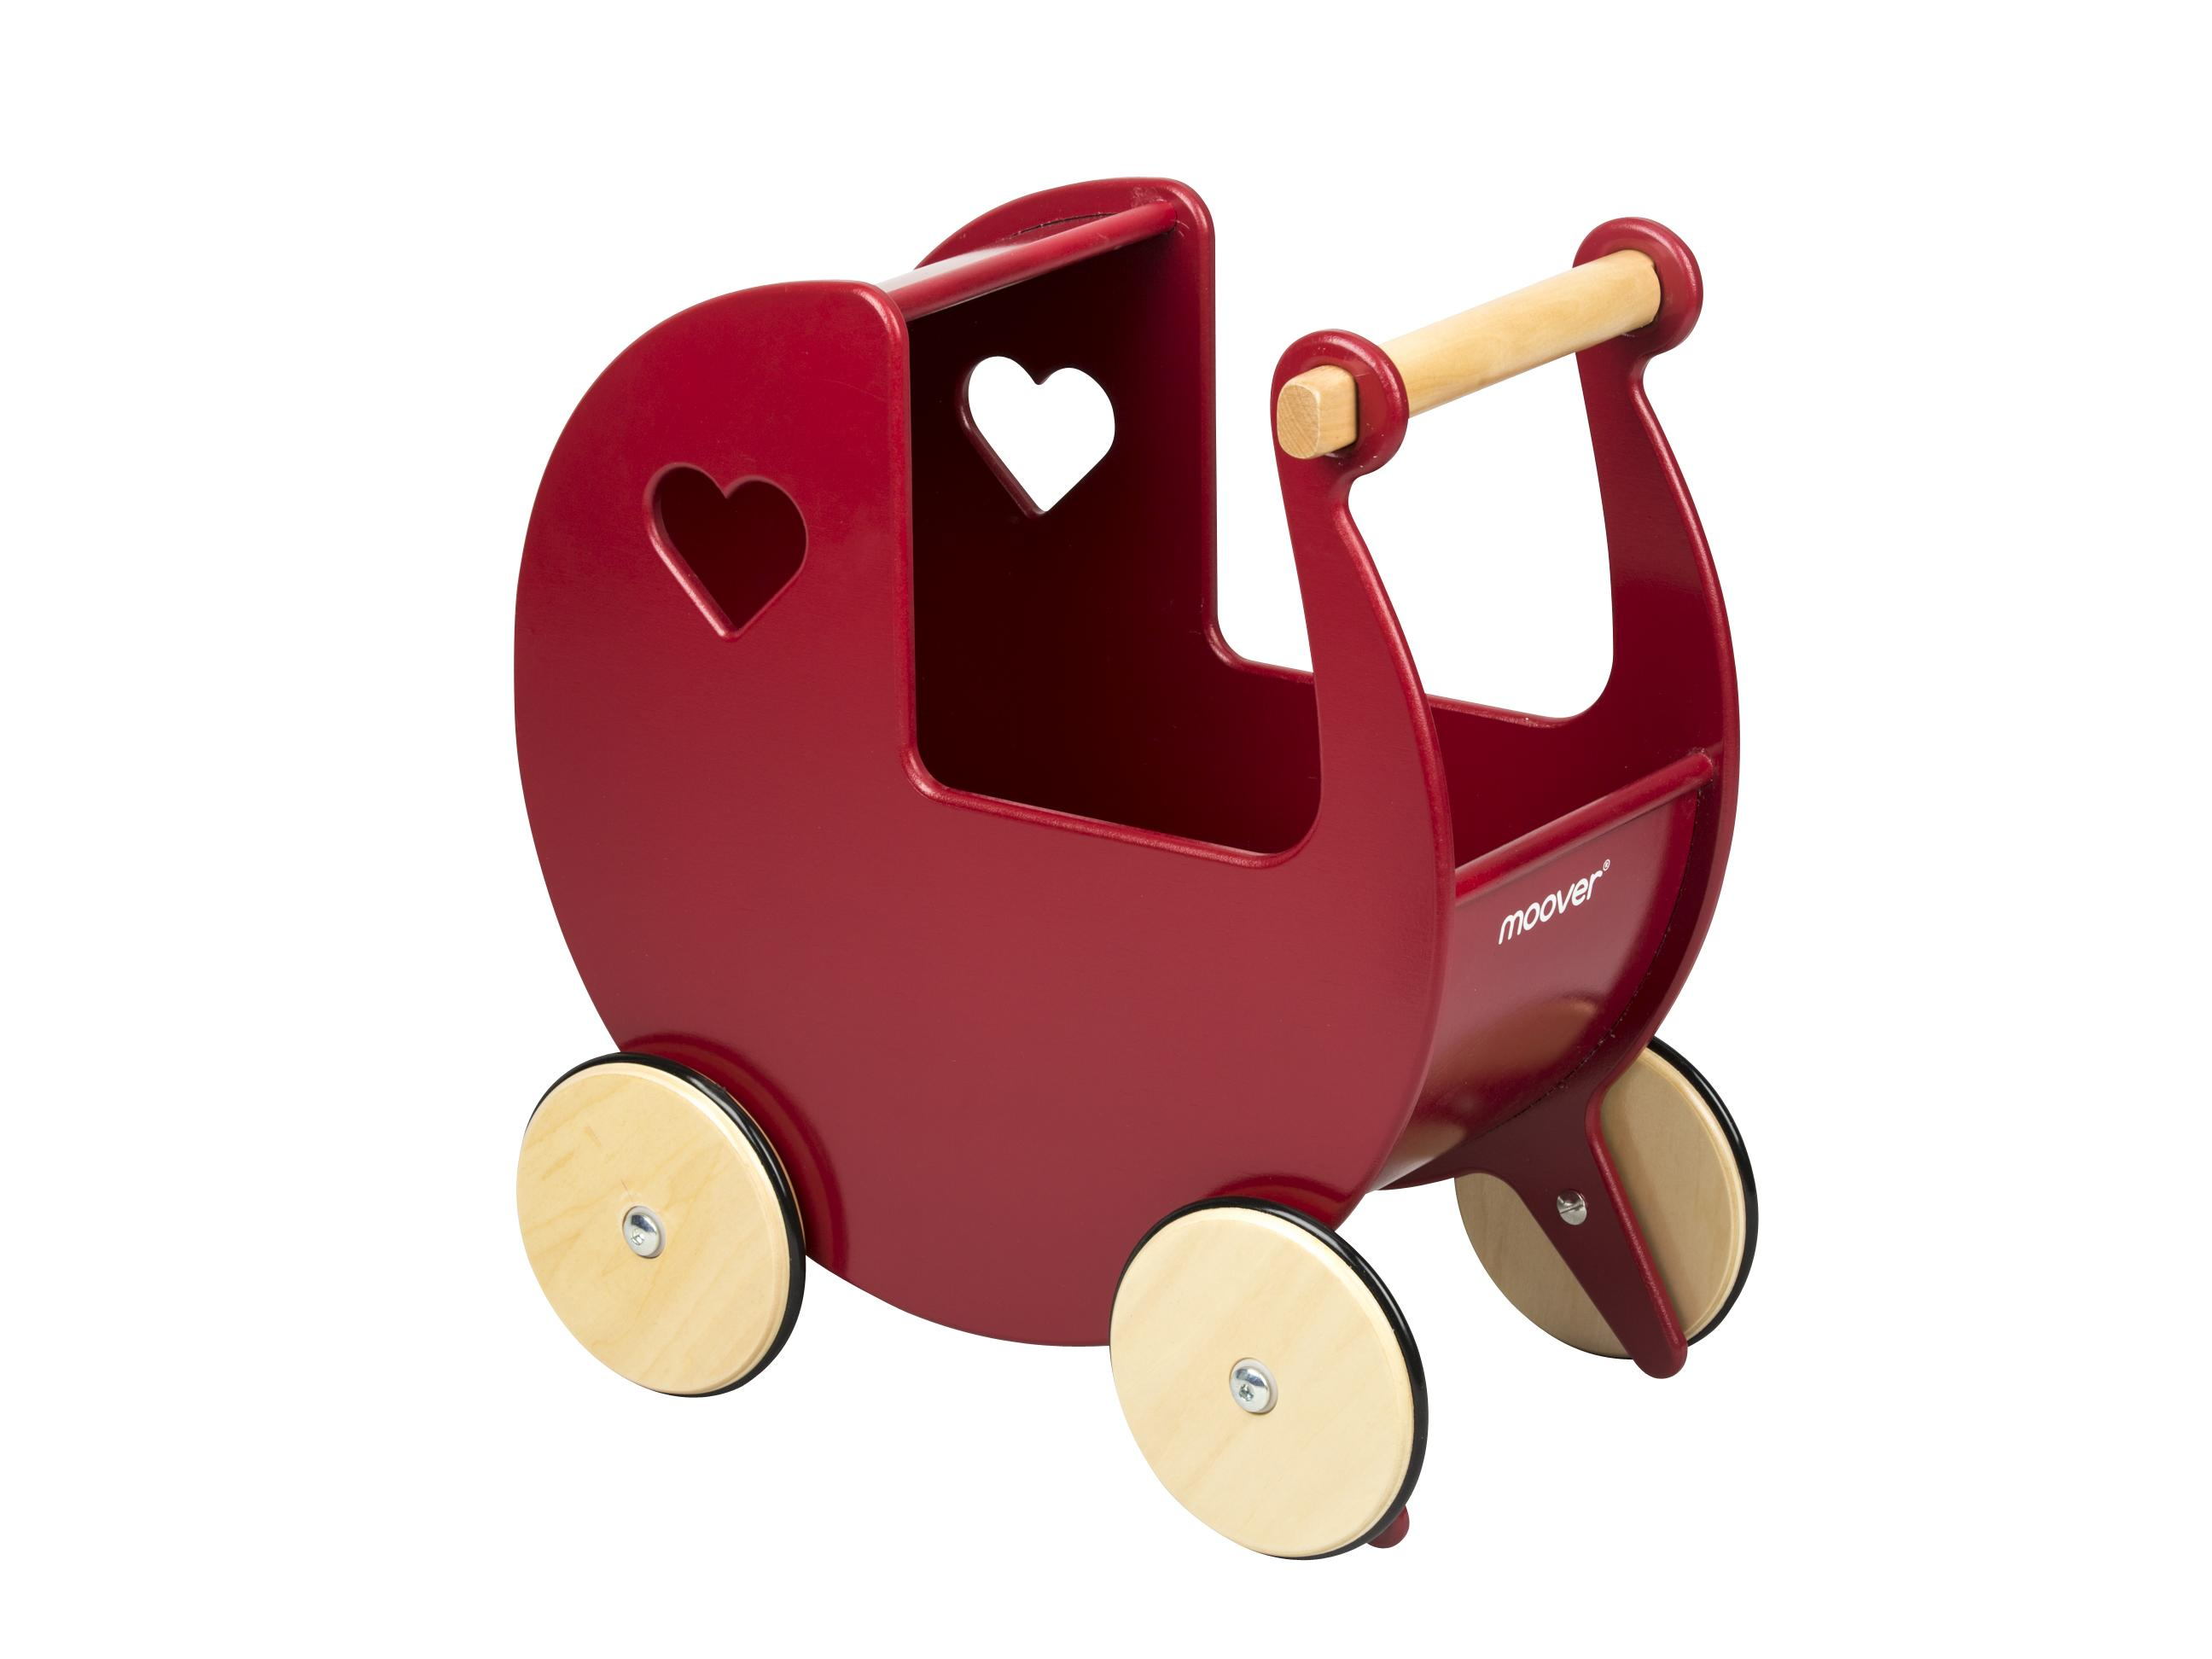 Red wooden pram with light coloured wheels on light background.